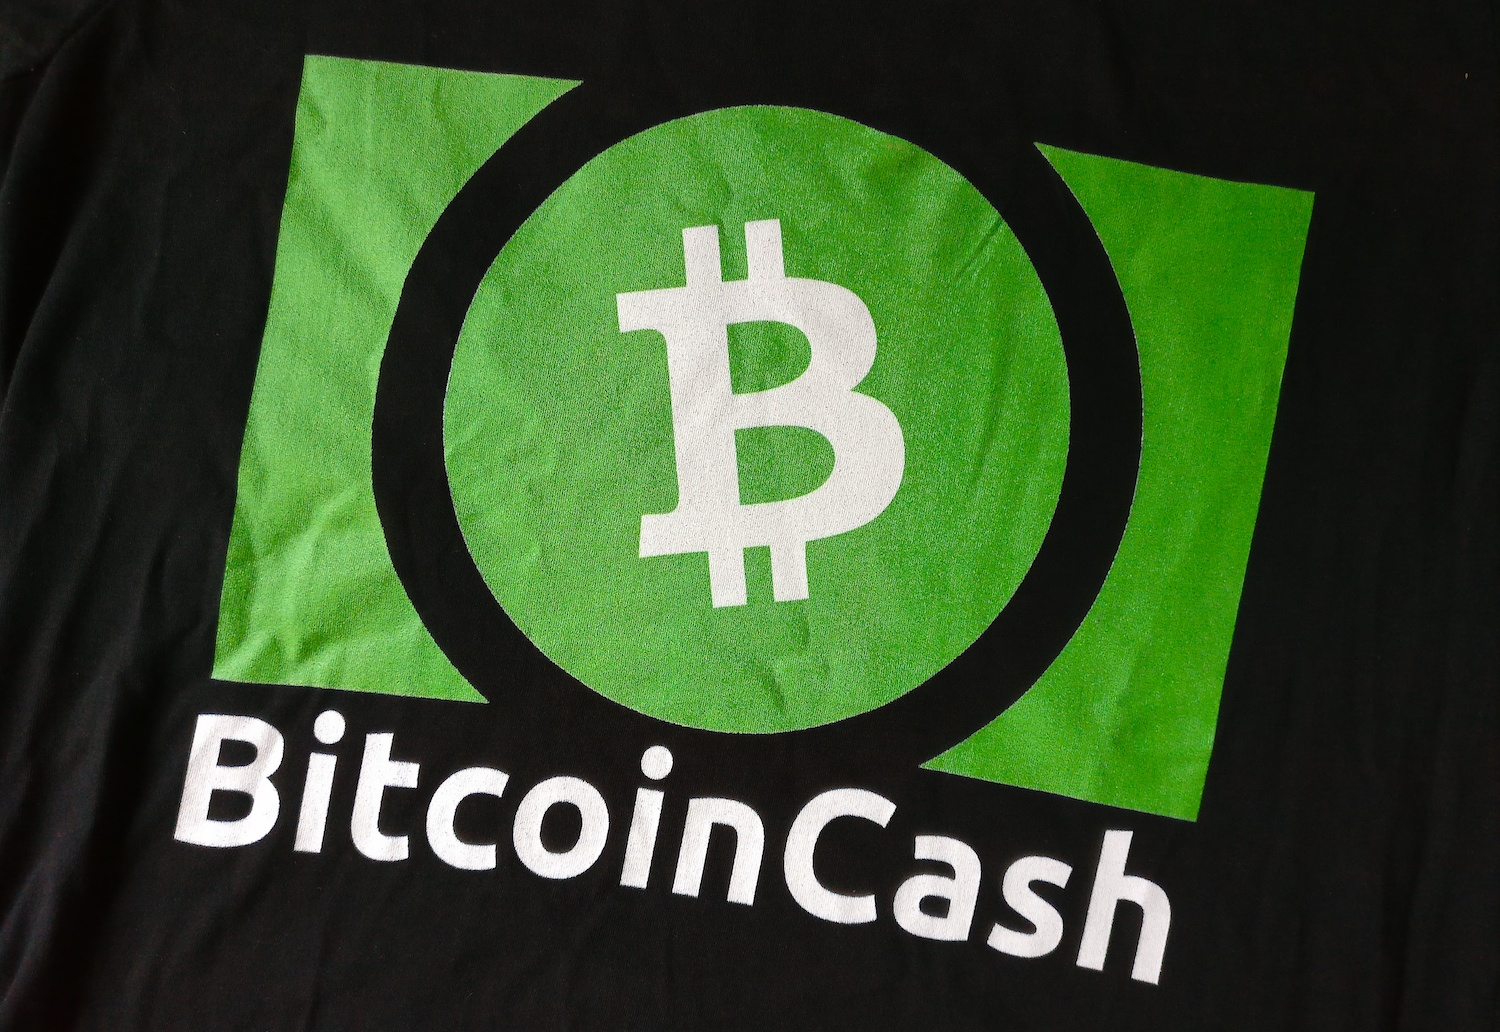 Why Bitcoin Cash Price Is Increasing? Bitcoin Cash Price Up 30 %